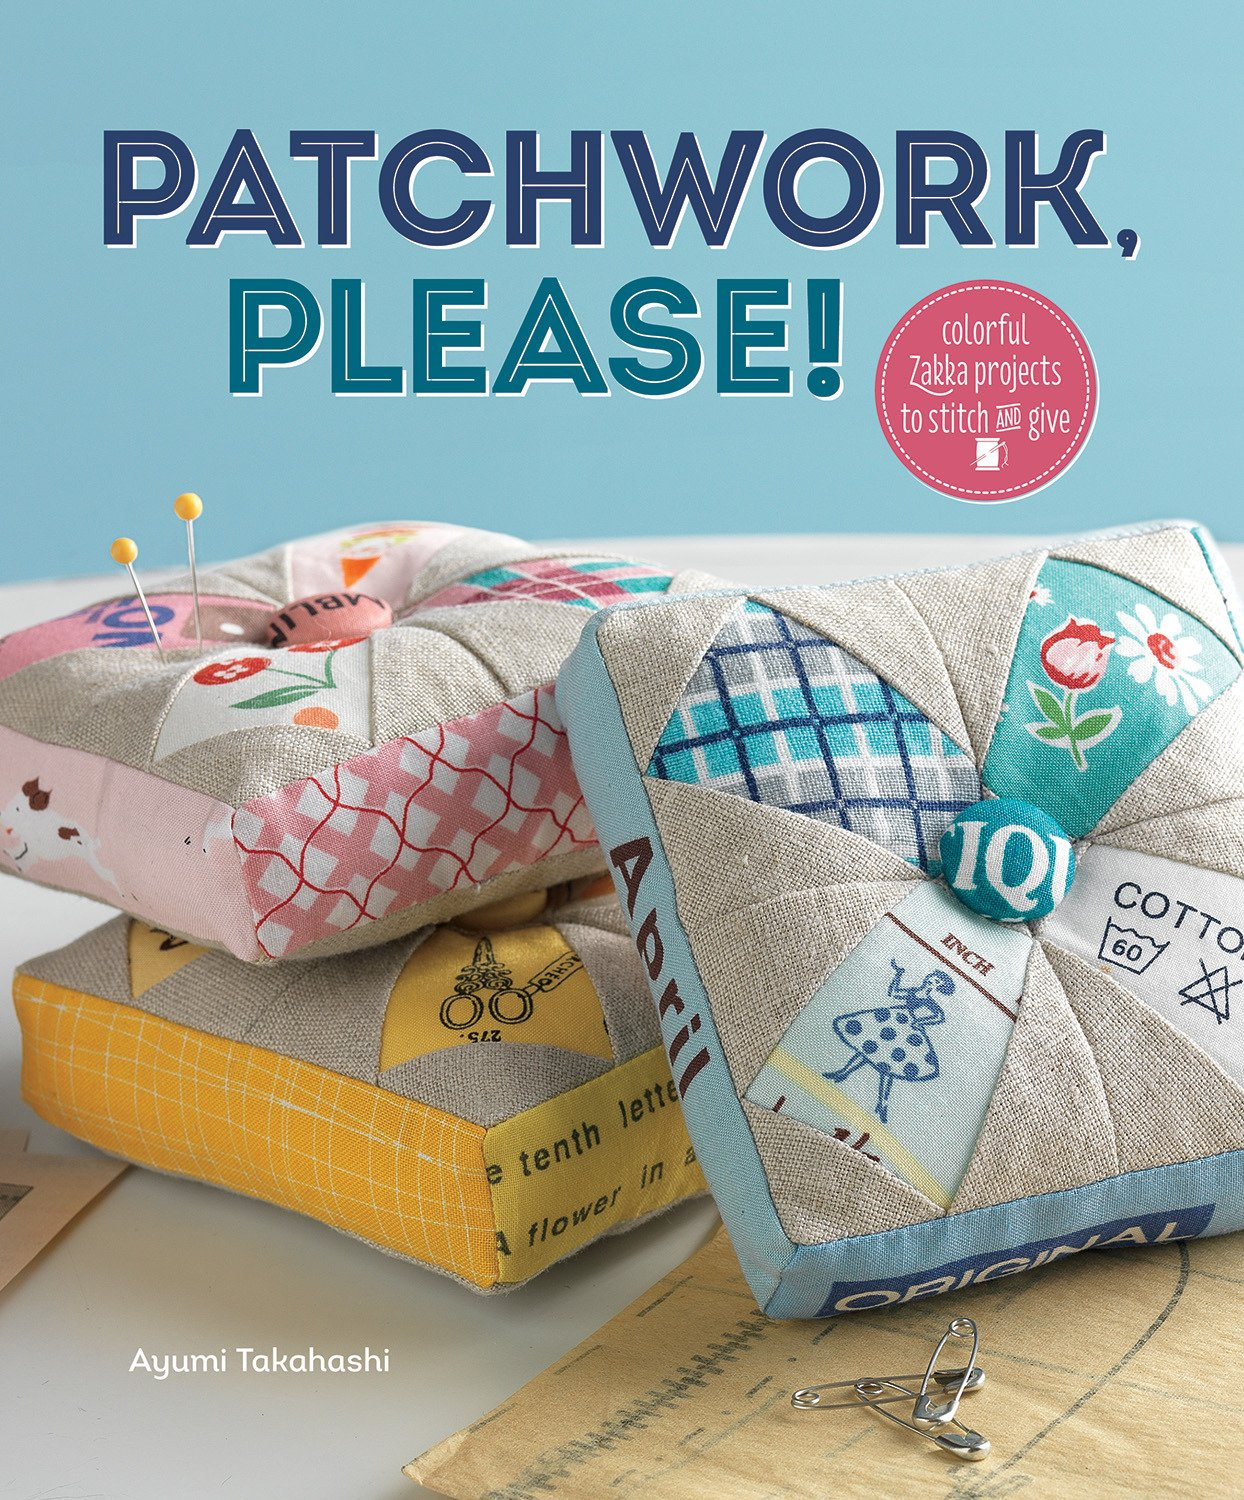 Patchwork, Please! Colorful Zakka Projects to Stitch and Give